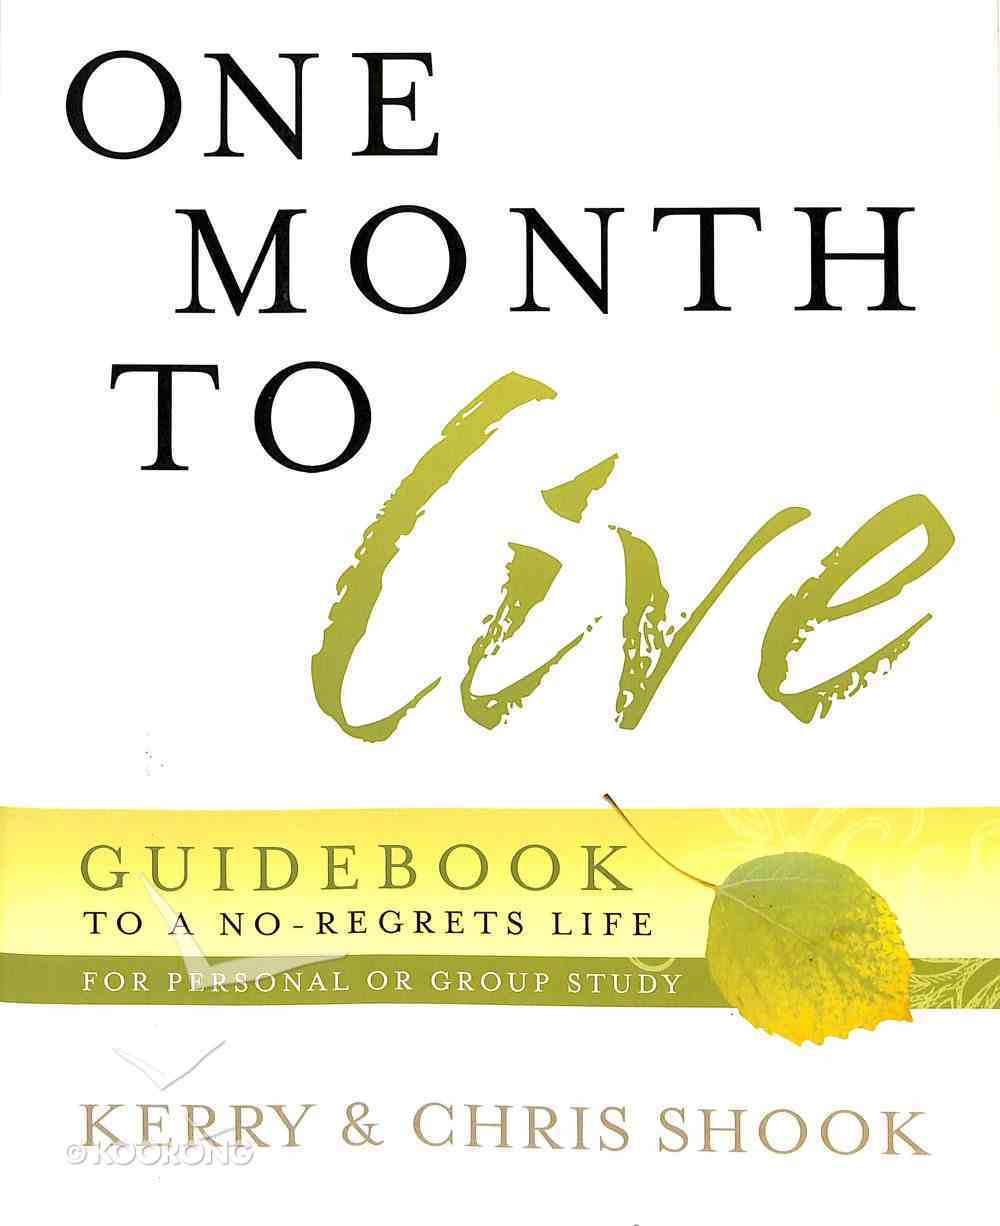 One Month to Live Guidebook Paperback